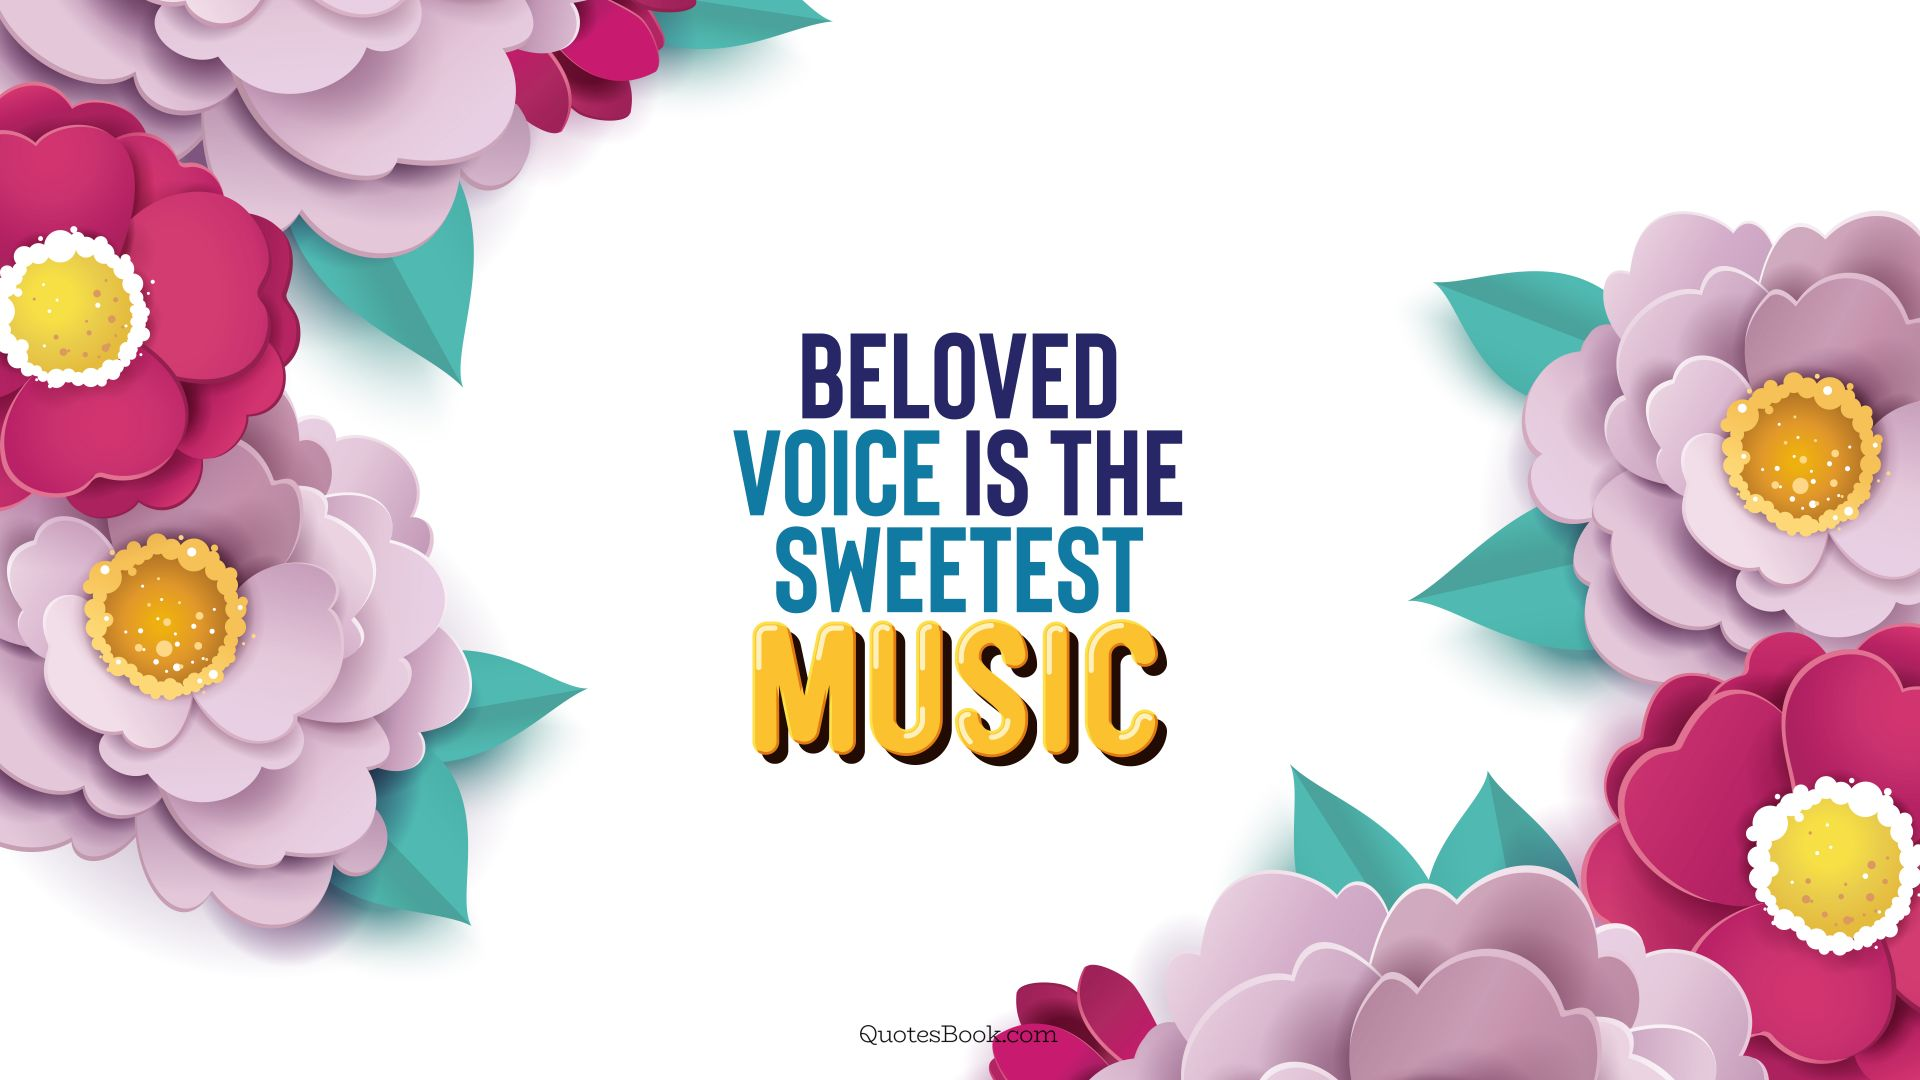 Beloved voice is the sweetest music. - Quote by QuotesBook